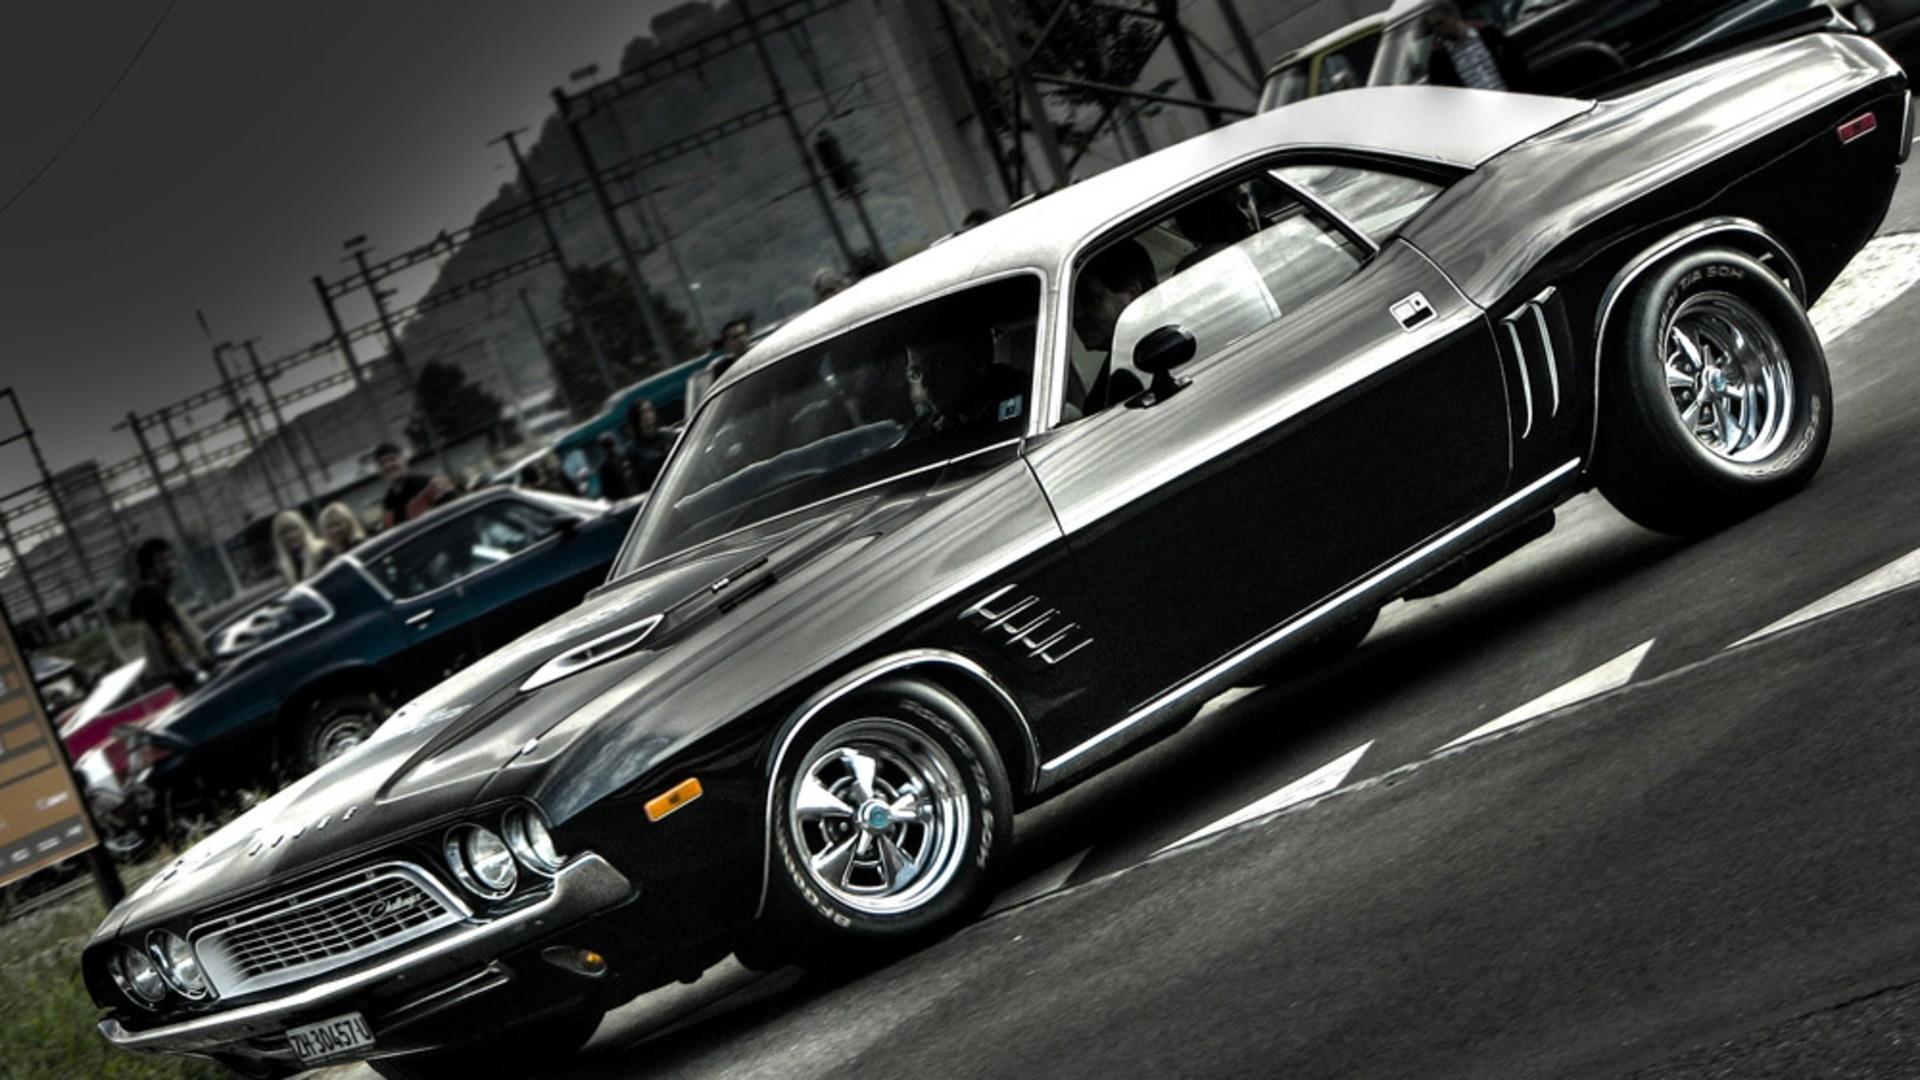 girls and muscle cars wallpaper (59+ images)